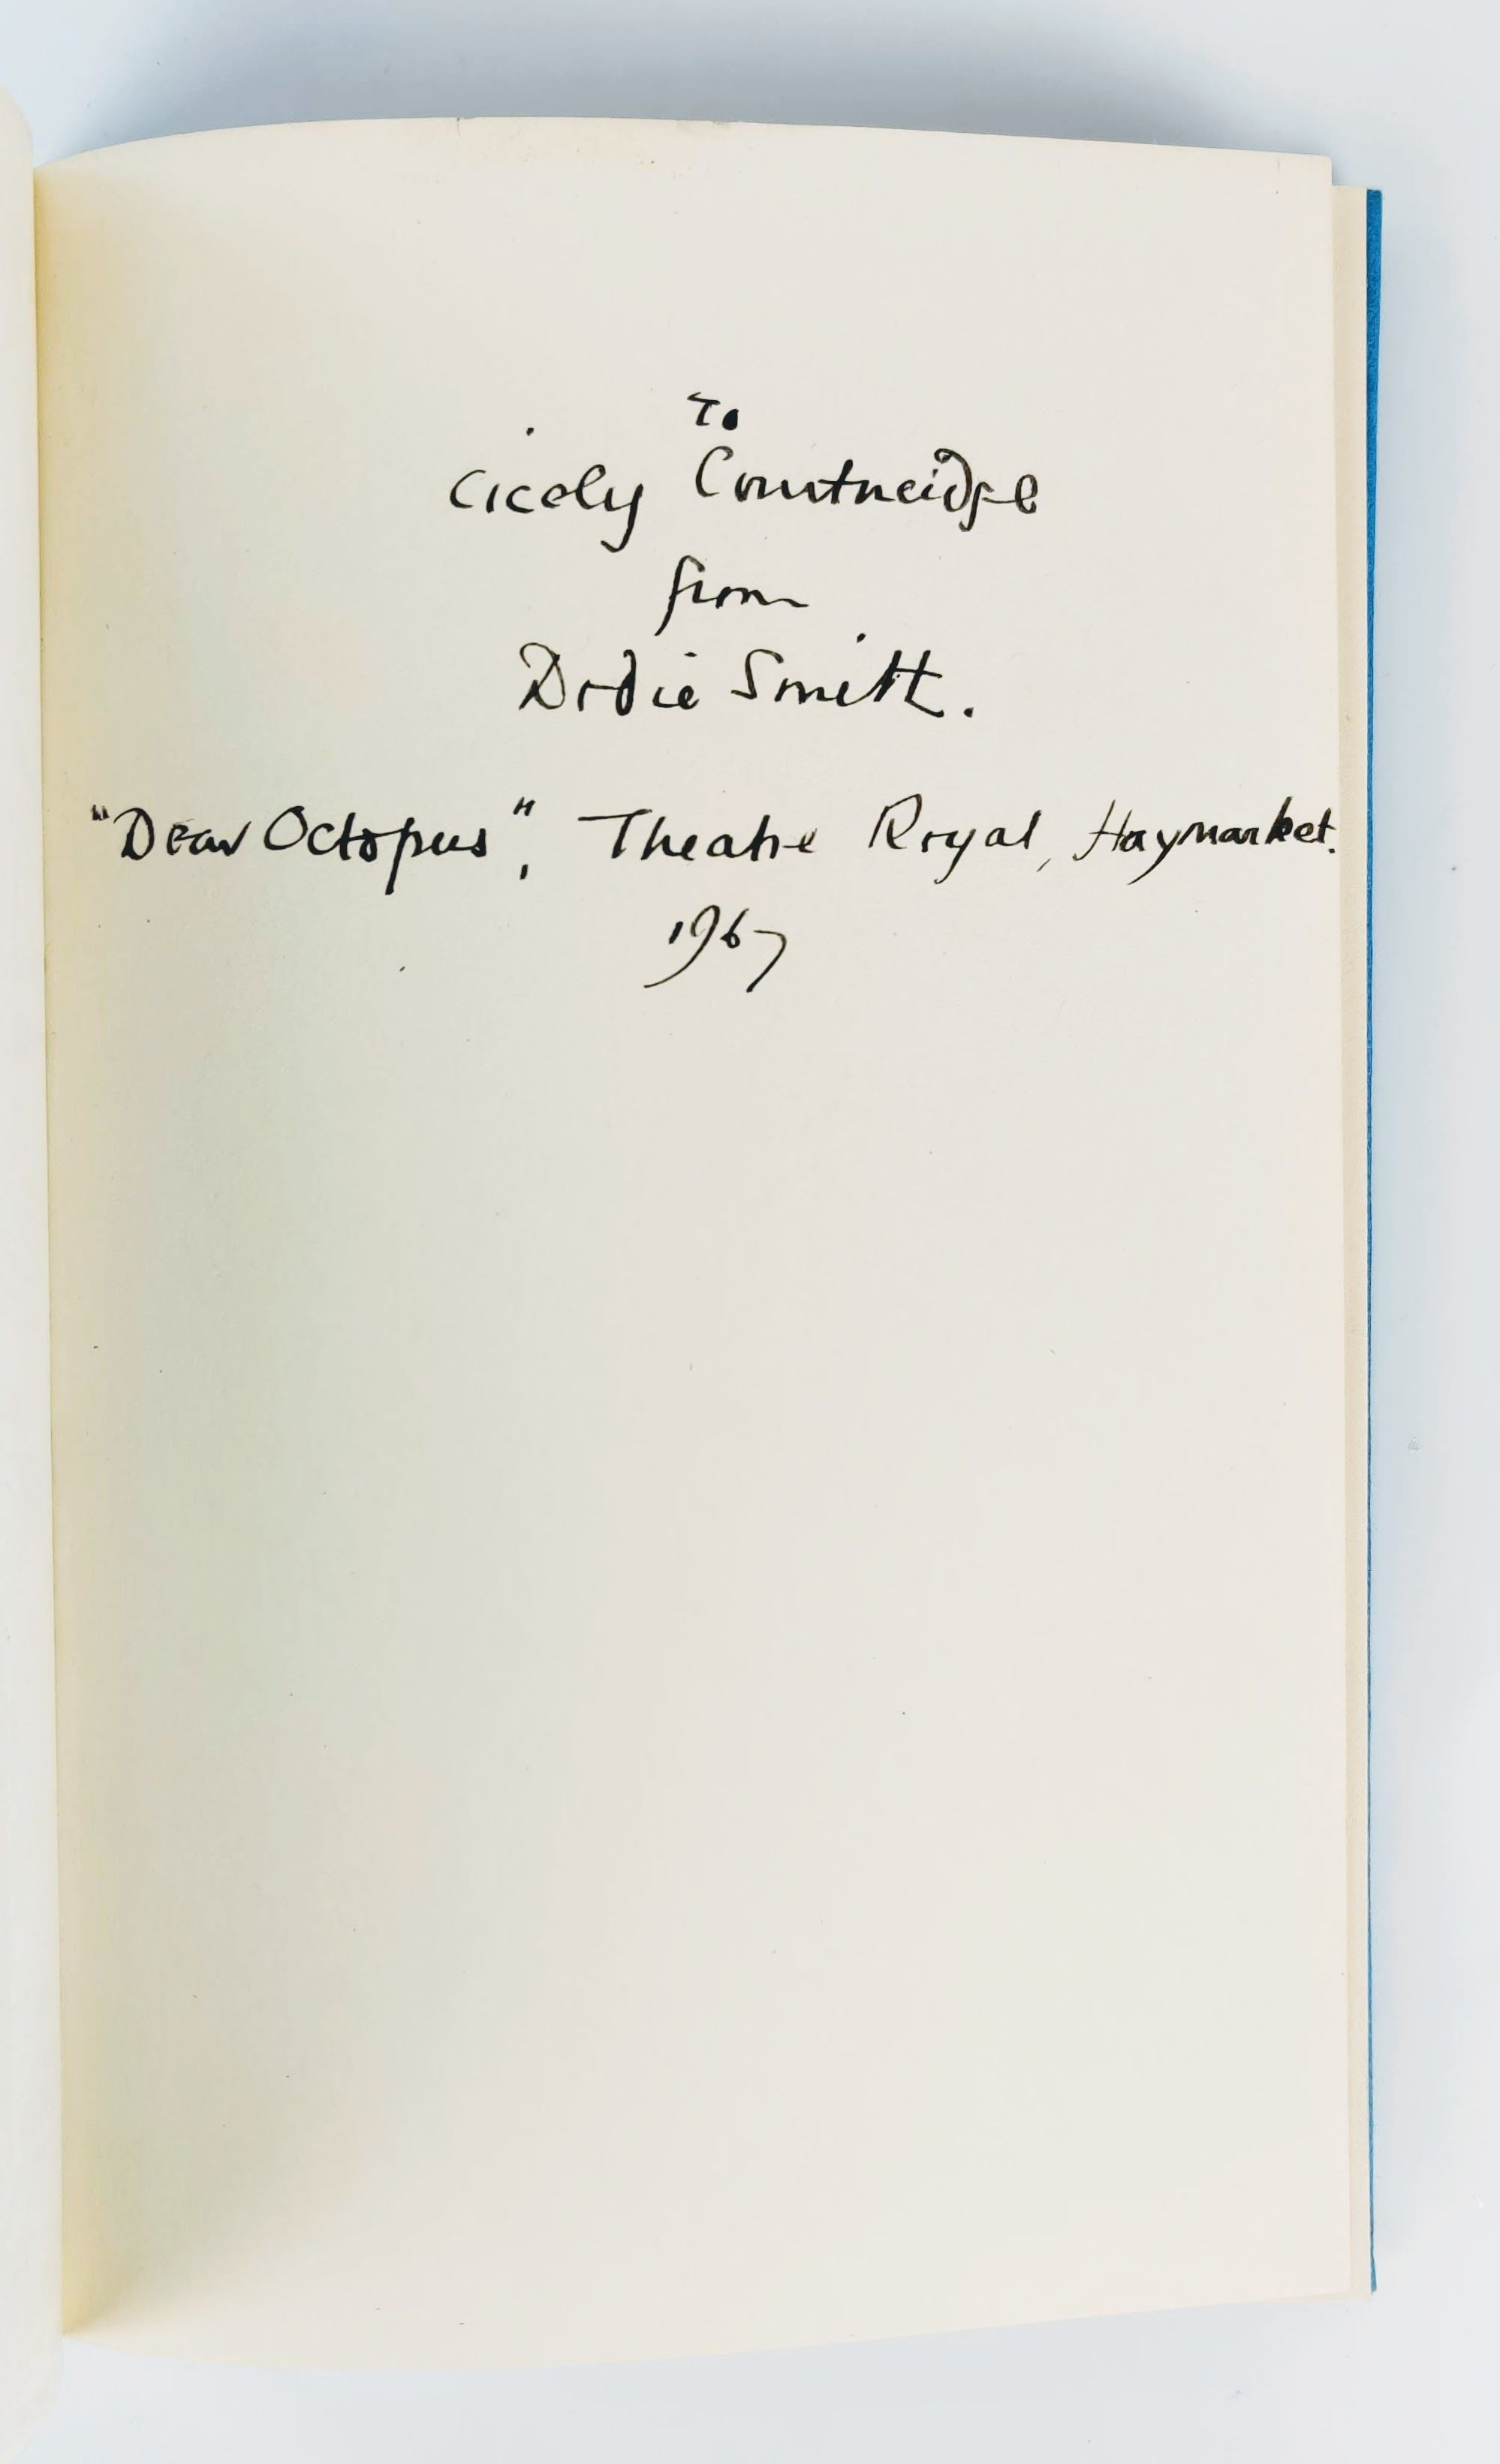 The Starlight Barking: More About The Hundred and One Dalmatians - Signed, Inscribed and Dated by the Author (photo 4)